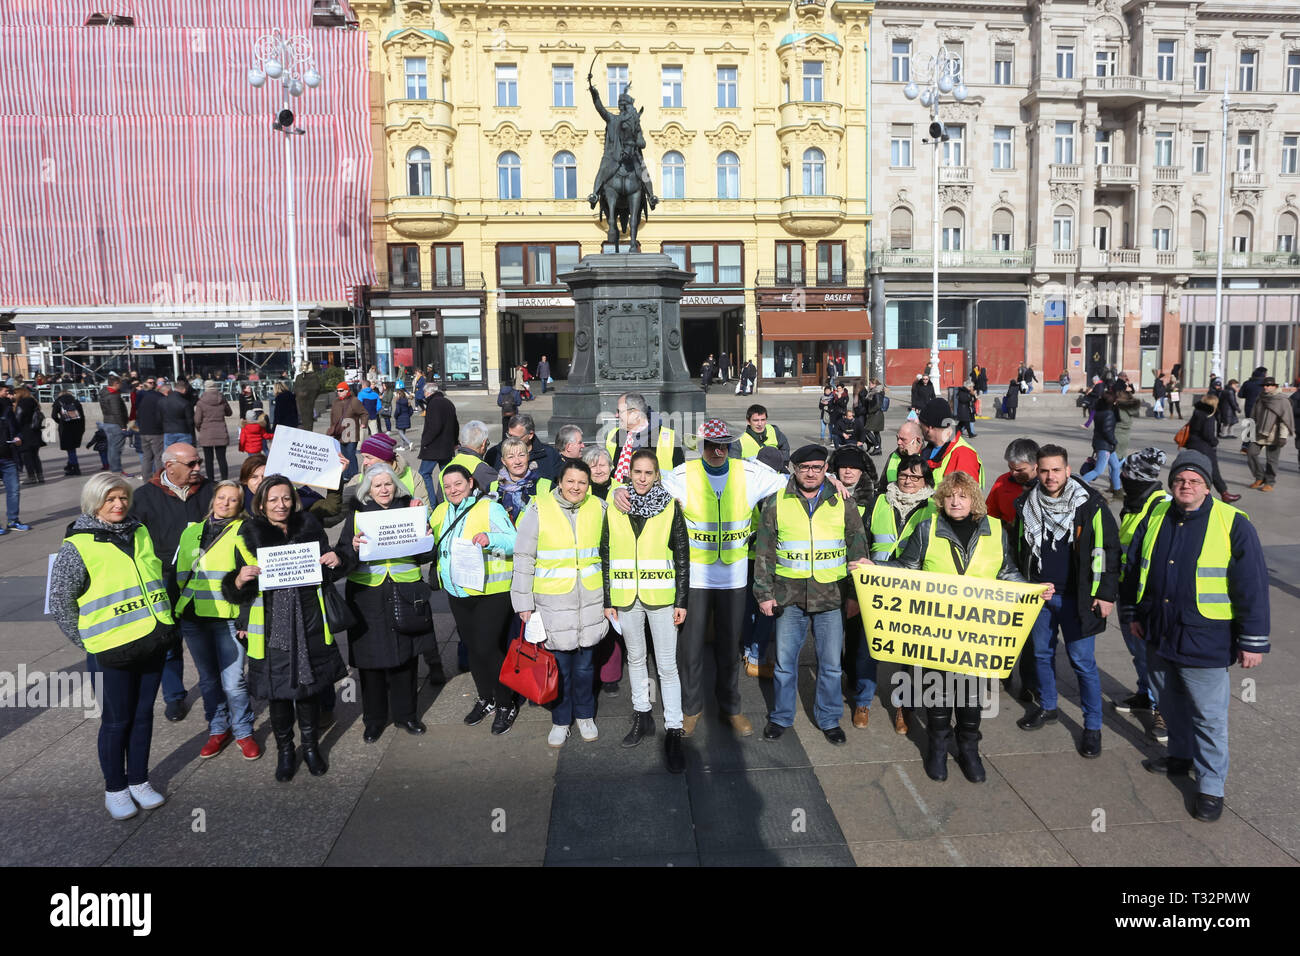 Zagreb, Croatia - February 9, 2019: A group of Yellow vests demonstrators with message posters protesting against corruption and for economic justice  - Stock Image